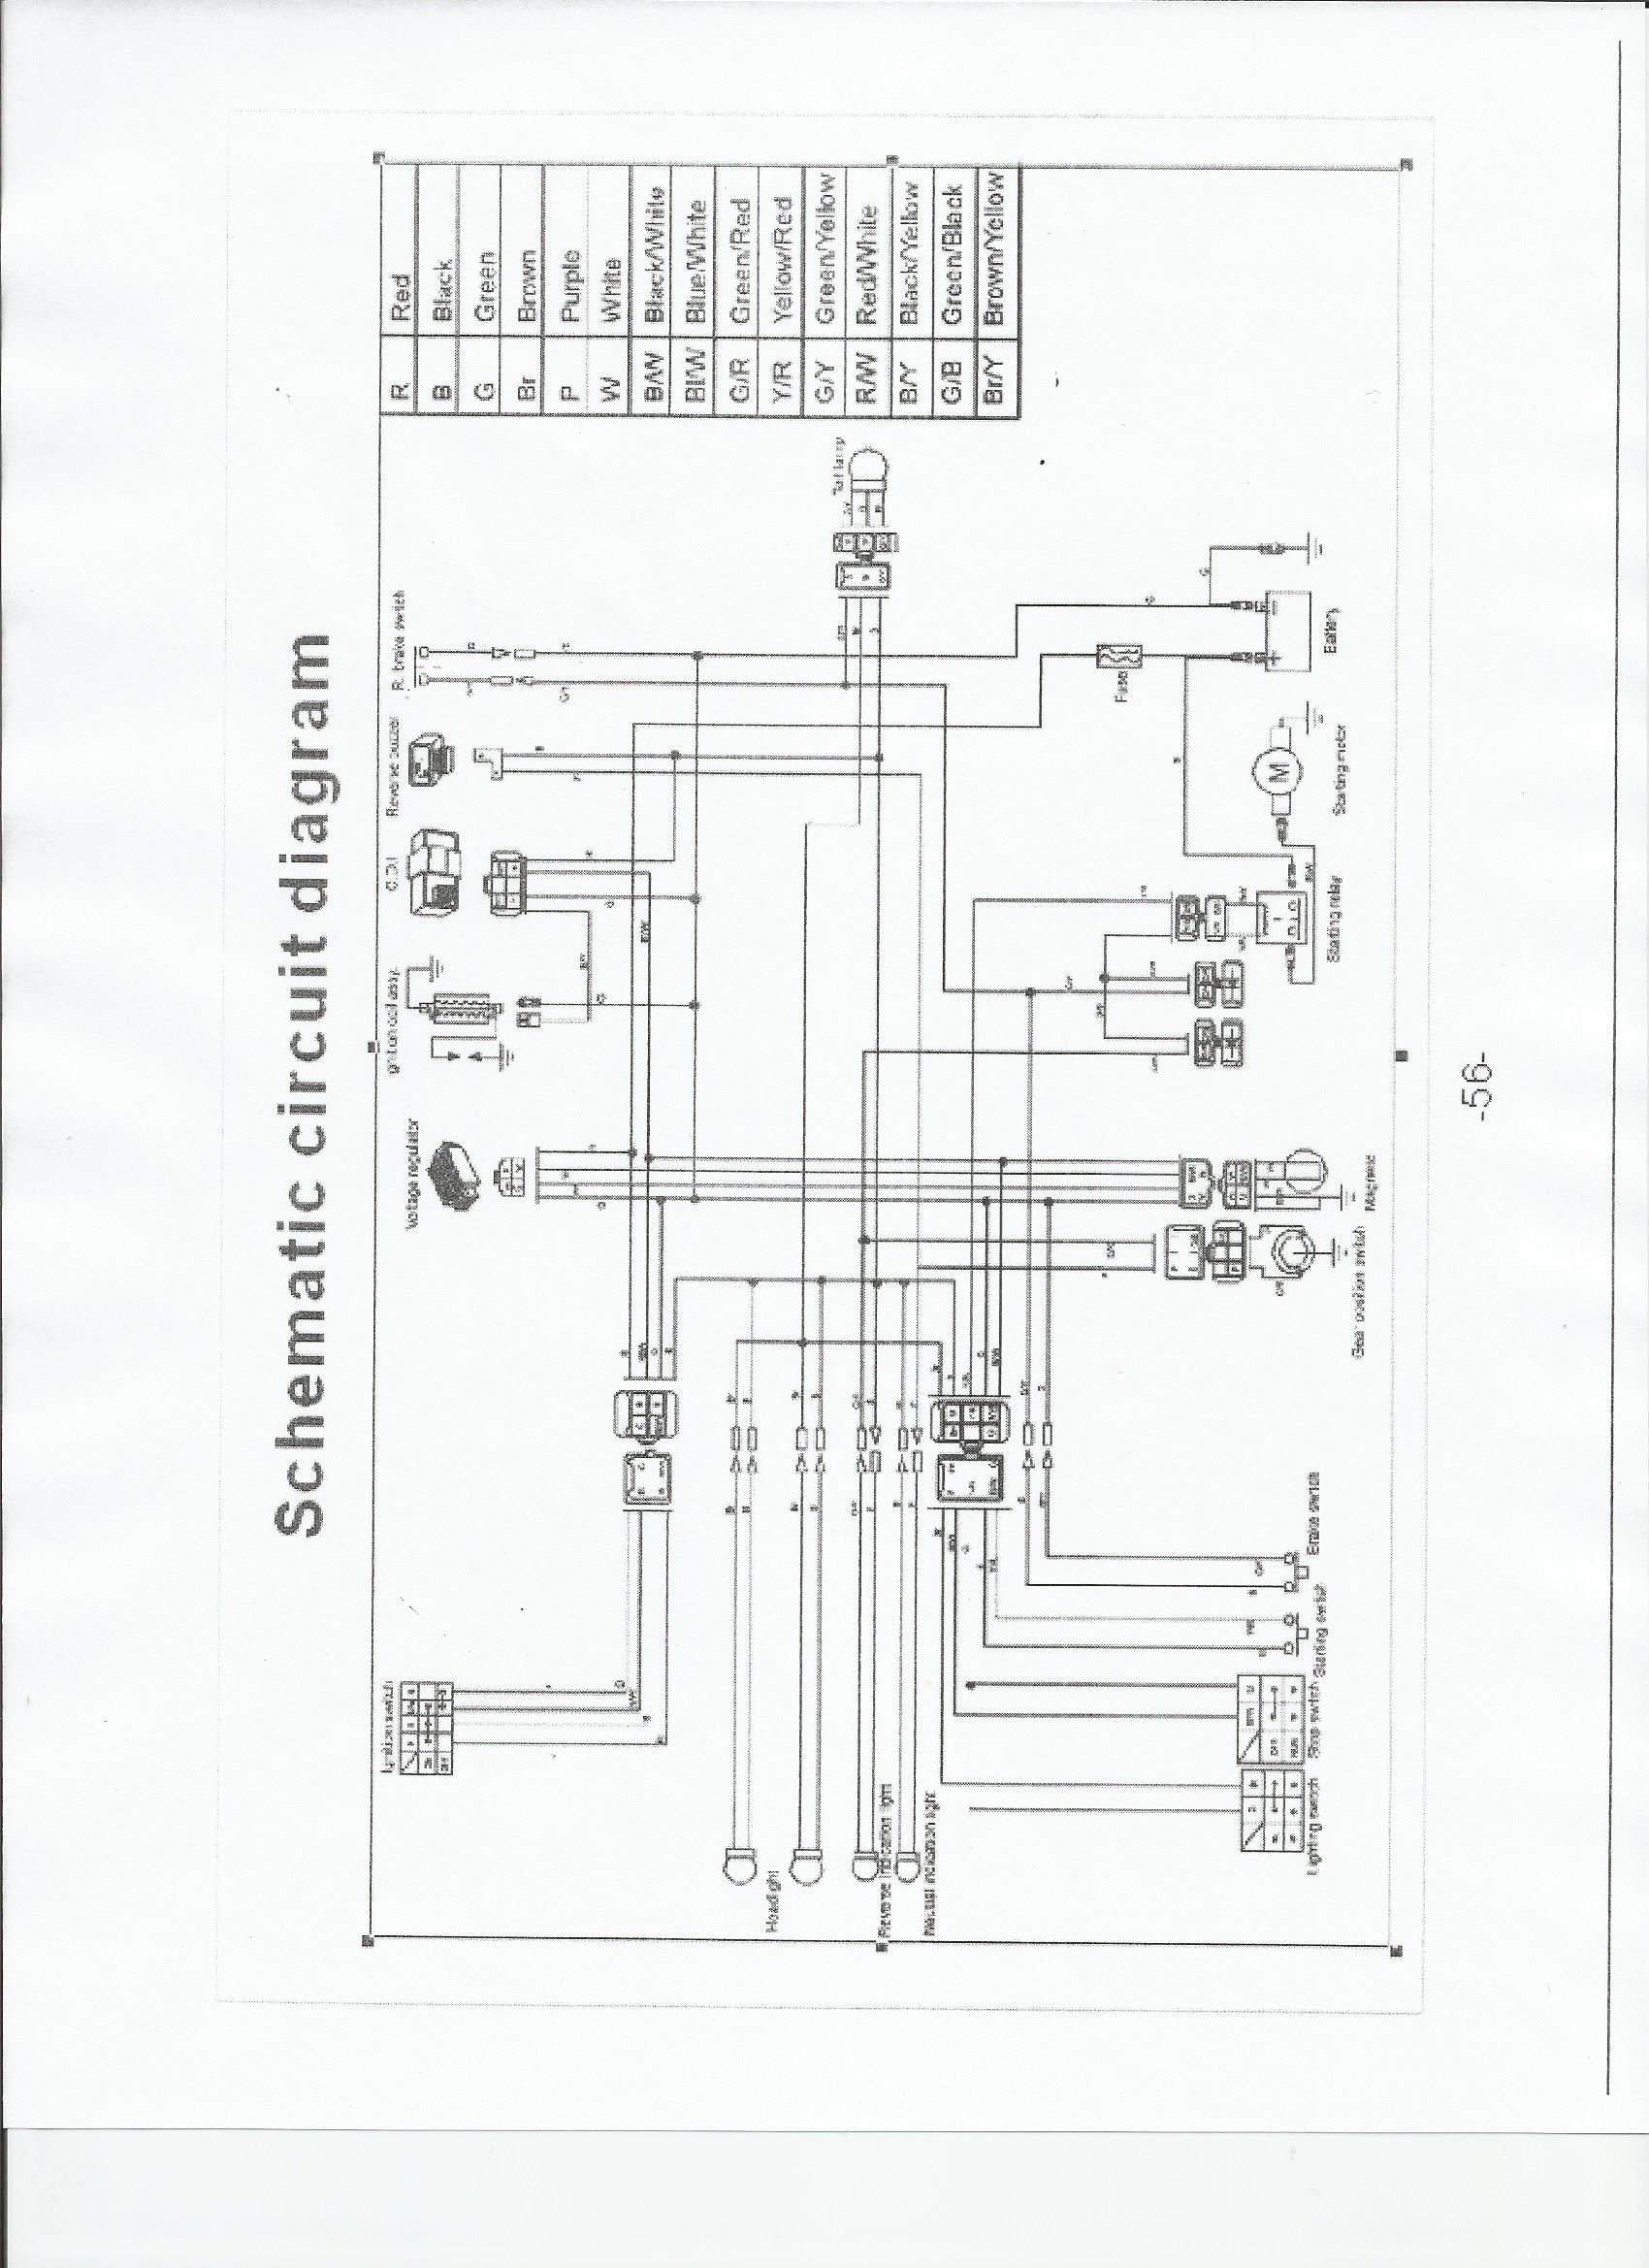 tao tao wiring schematic taotao mini and youth atv wiring schematic familygokarts support atv wiring diagram at webbmarketing.co